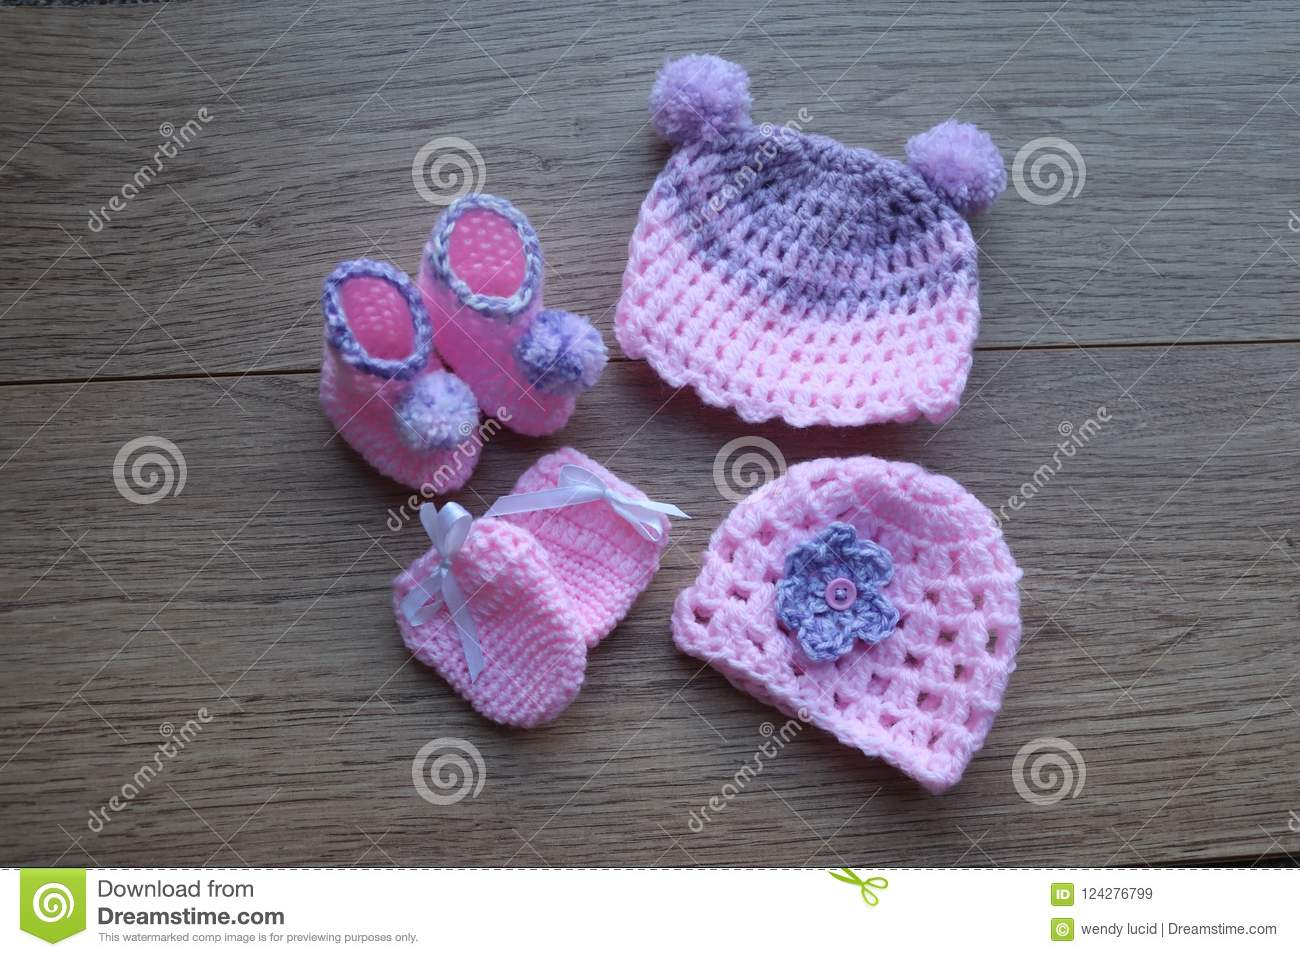 6f0d3a48b0f Pink and lilac yarn used to crochet baby hat mittens and botties.hat has  flower and Pom Pom